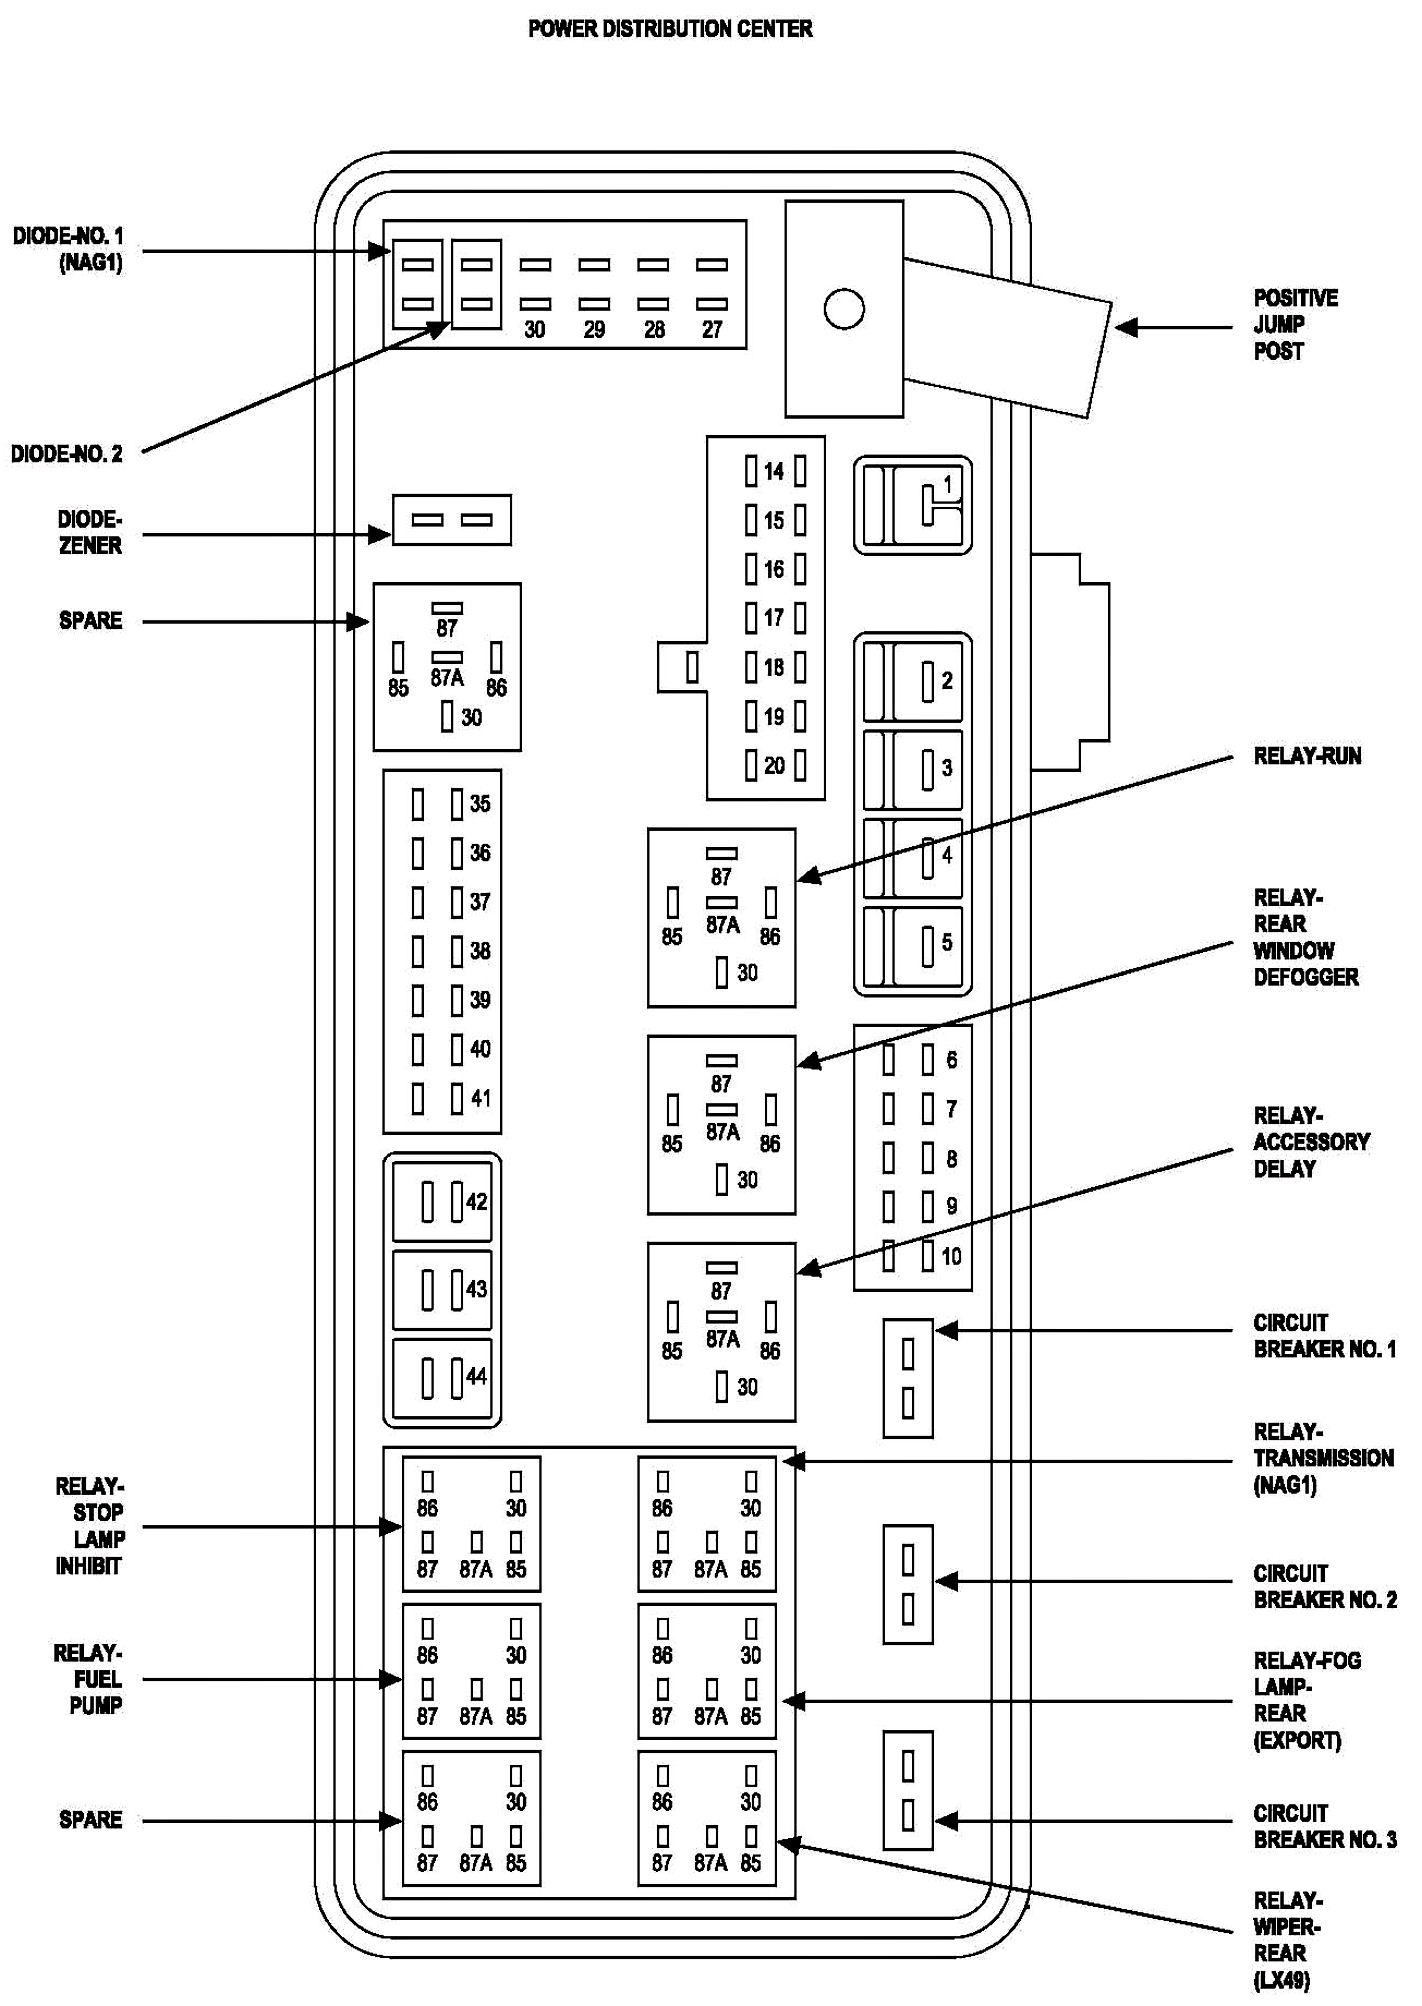 2003 Bmw Z4 Fuse Box Location on 2003 jaguar xj8 engine diagram